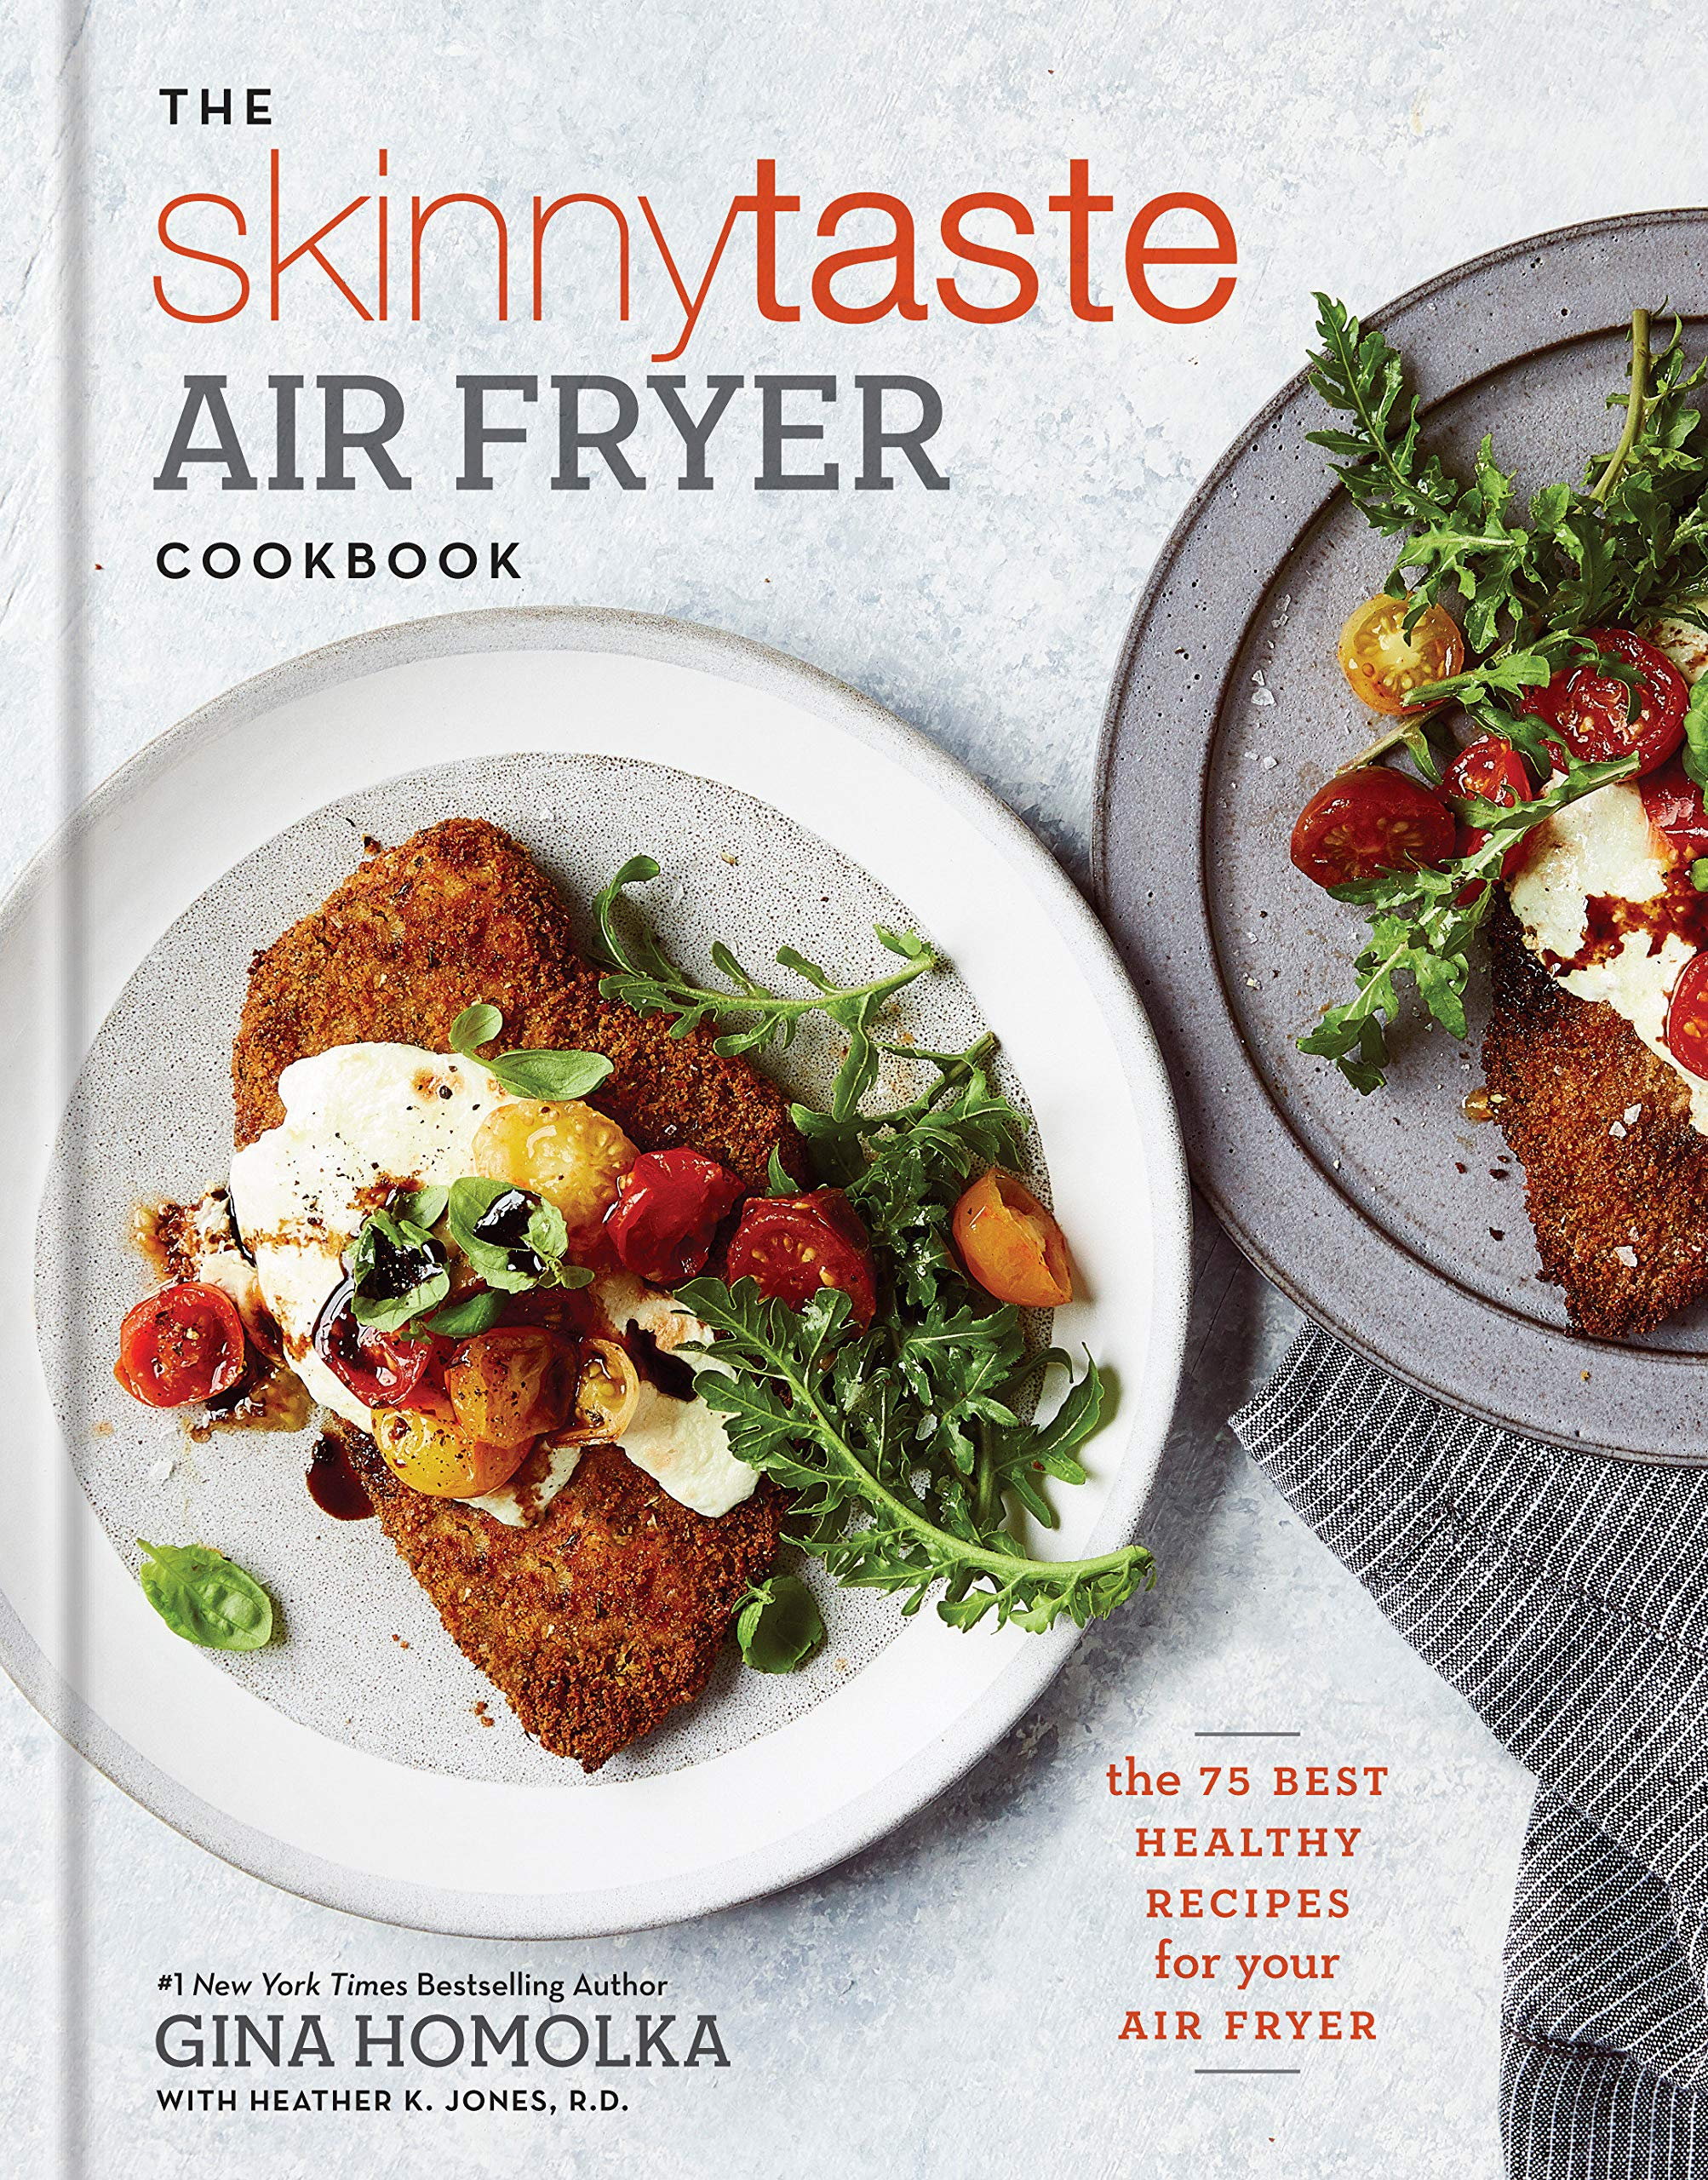 Skinnytaste Air Fryer Cookbook Healthy